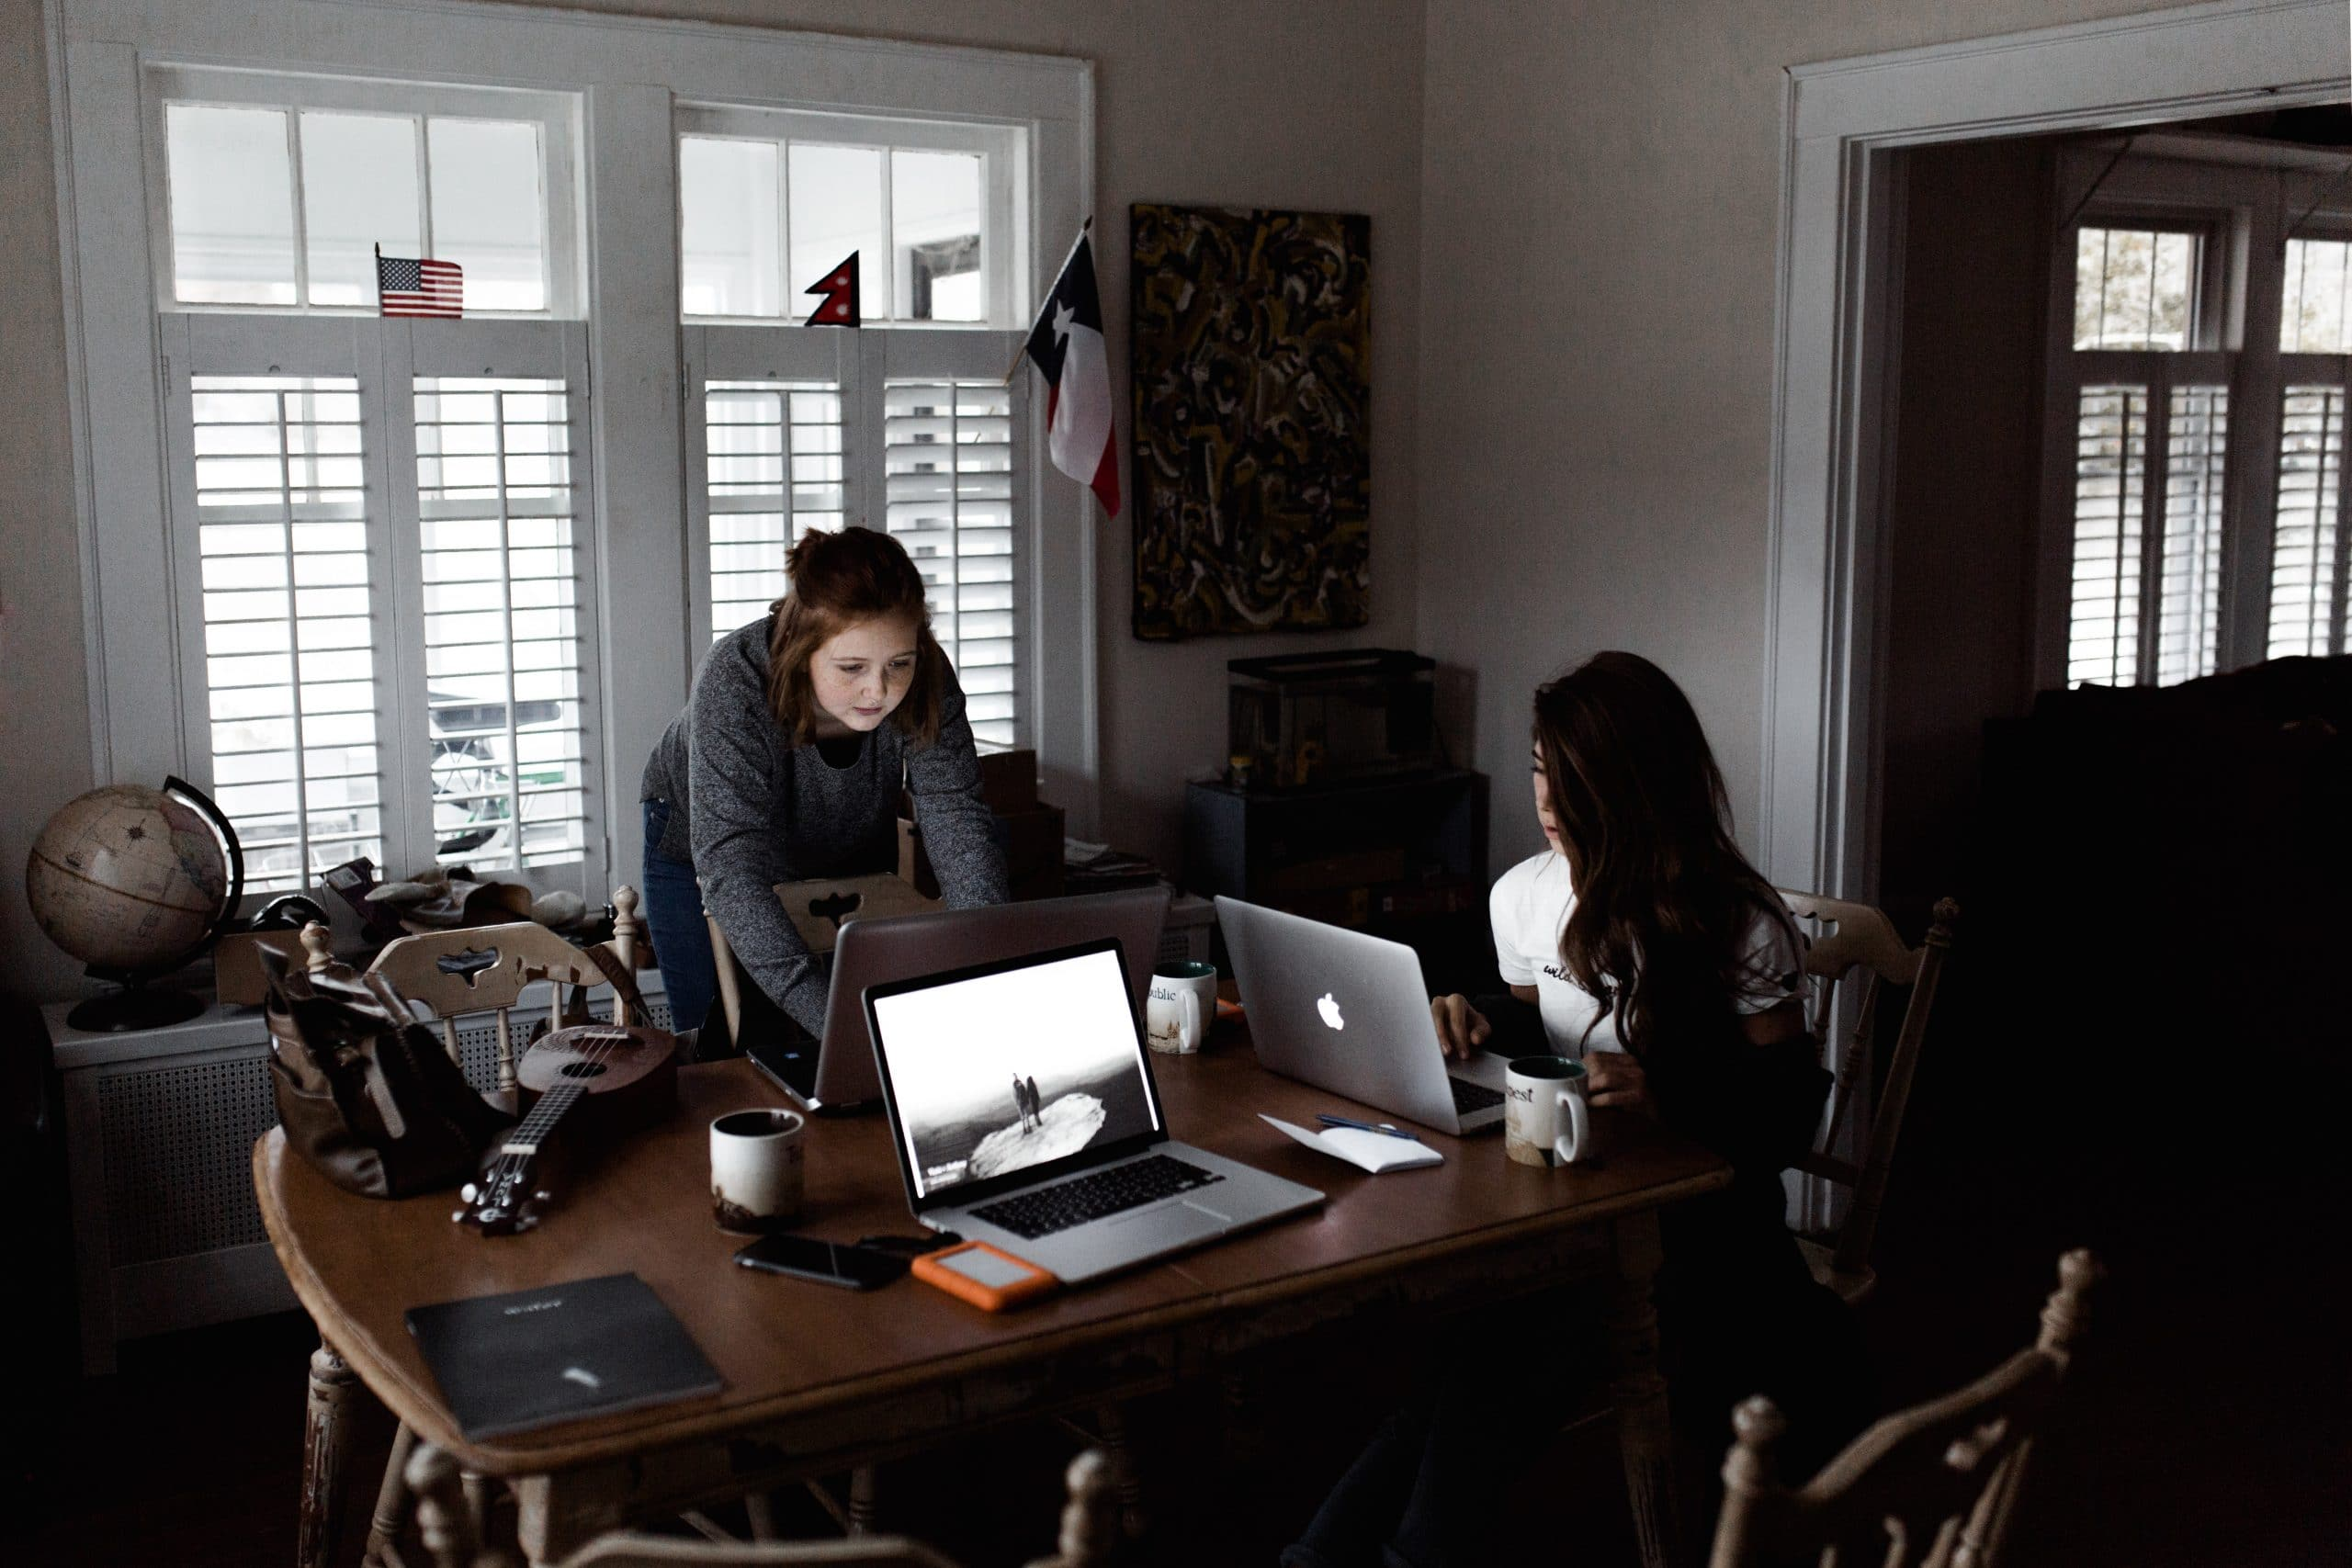 Two women working on their laptops at a table